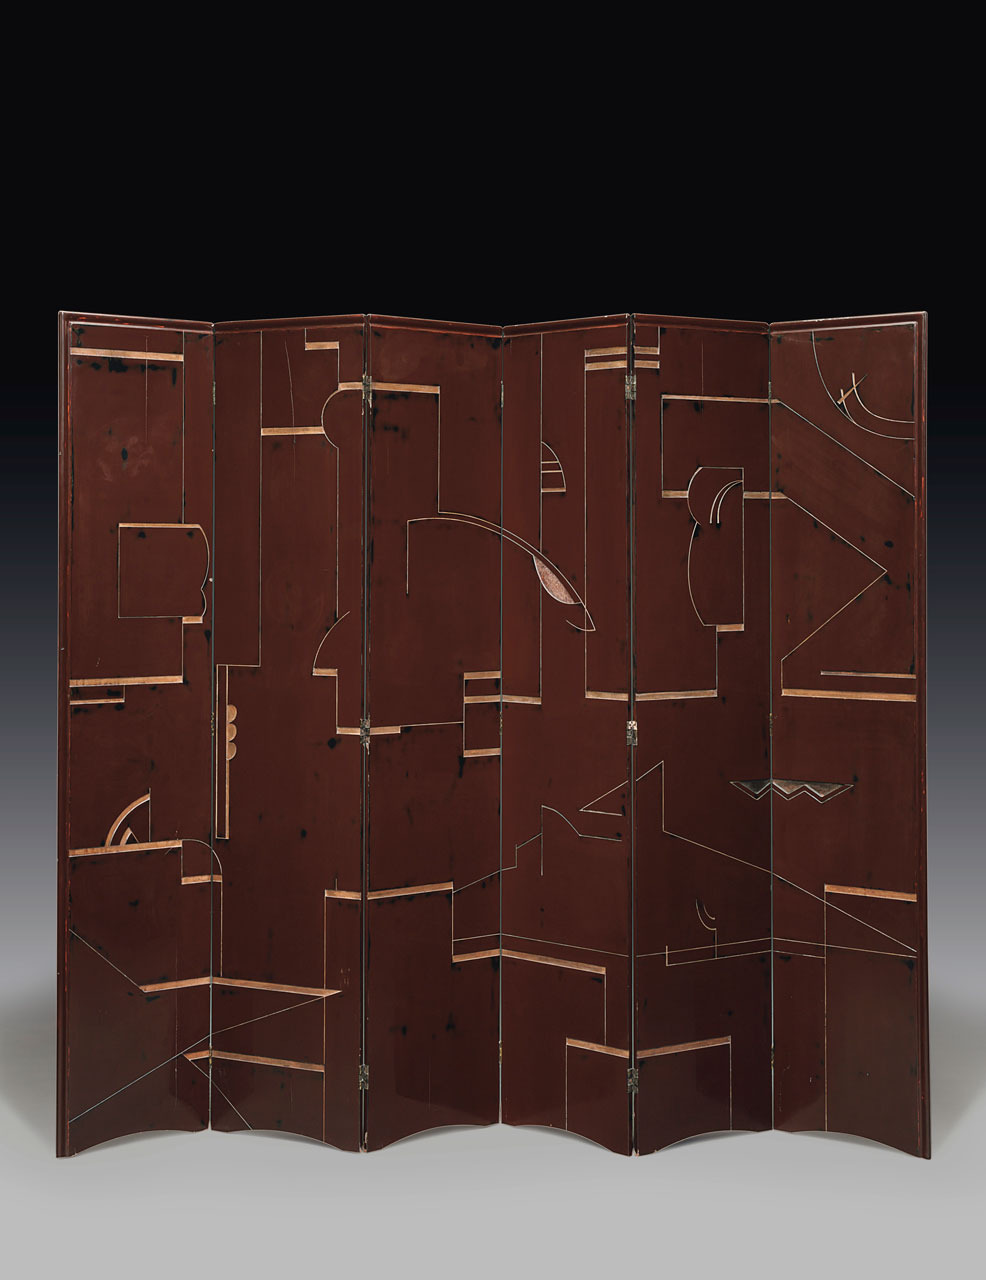 Installation image of a six-panel burgundy screen with gold geometric designs.